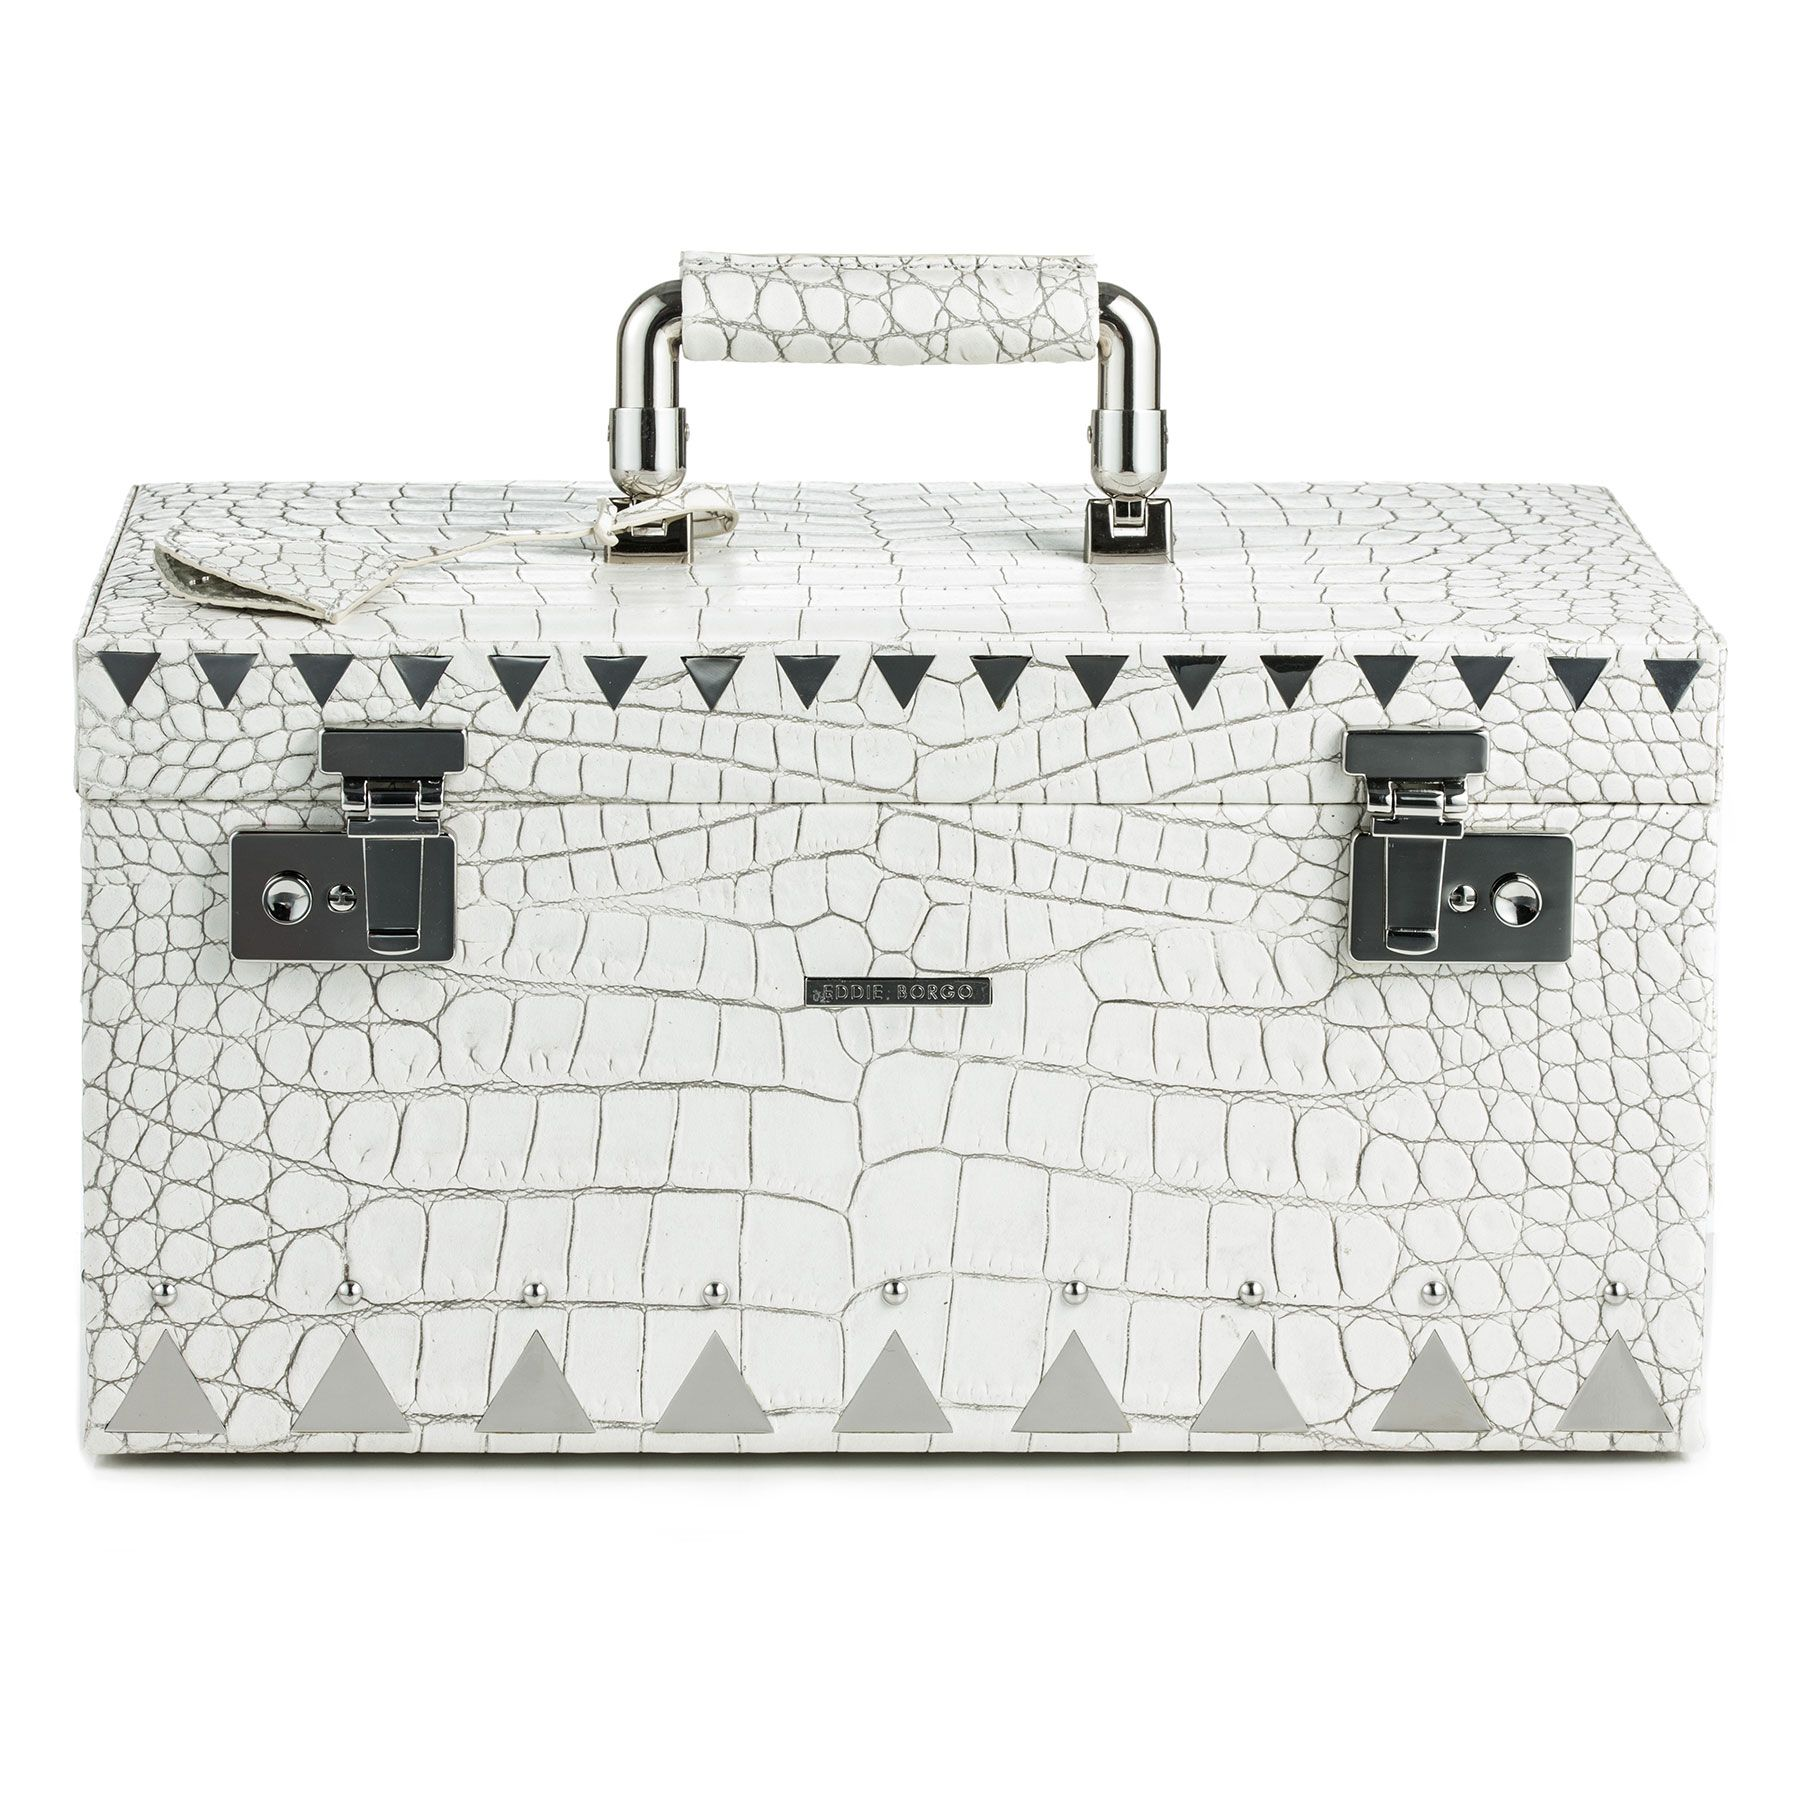 EDDIE BORGO JEWELRY TRUNK IN WHITE CROCODILE 2000 I am looking